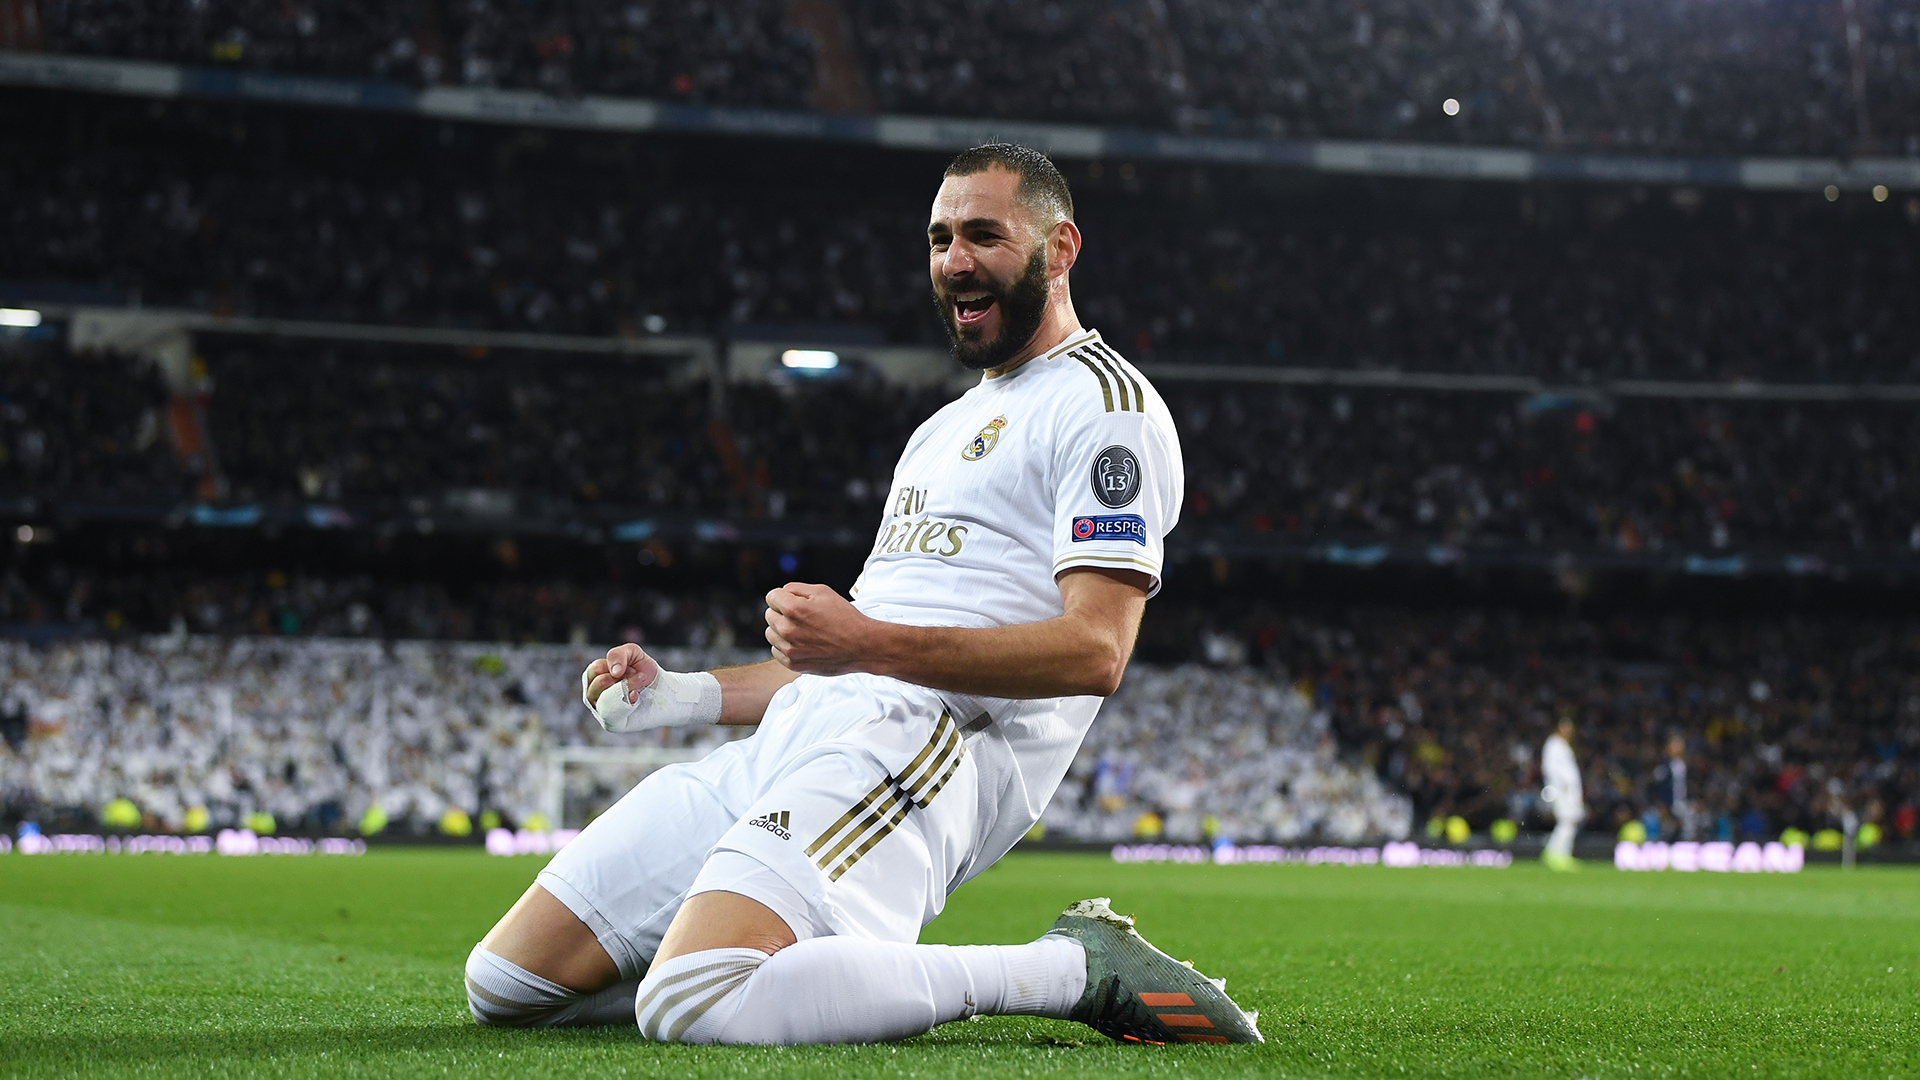 Karim Benzema 'signs one-year contract extension at Real Madrid' but LaLiga giants will not announce deal until the end of the season - Bóng Đá